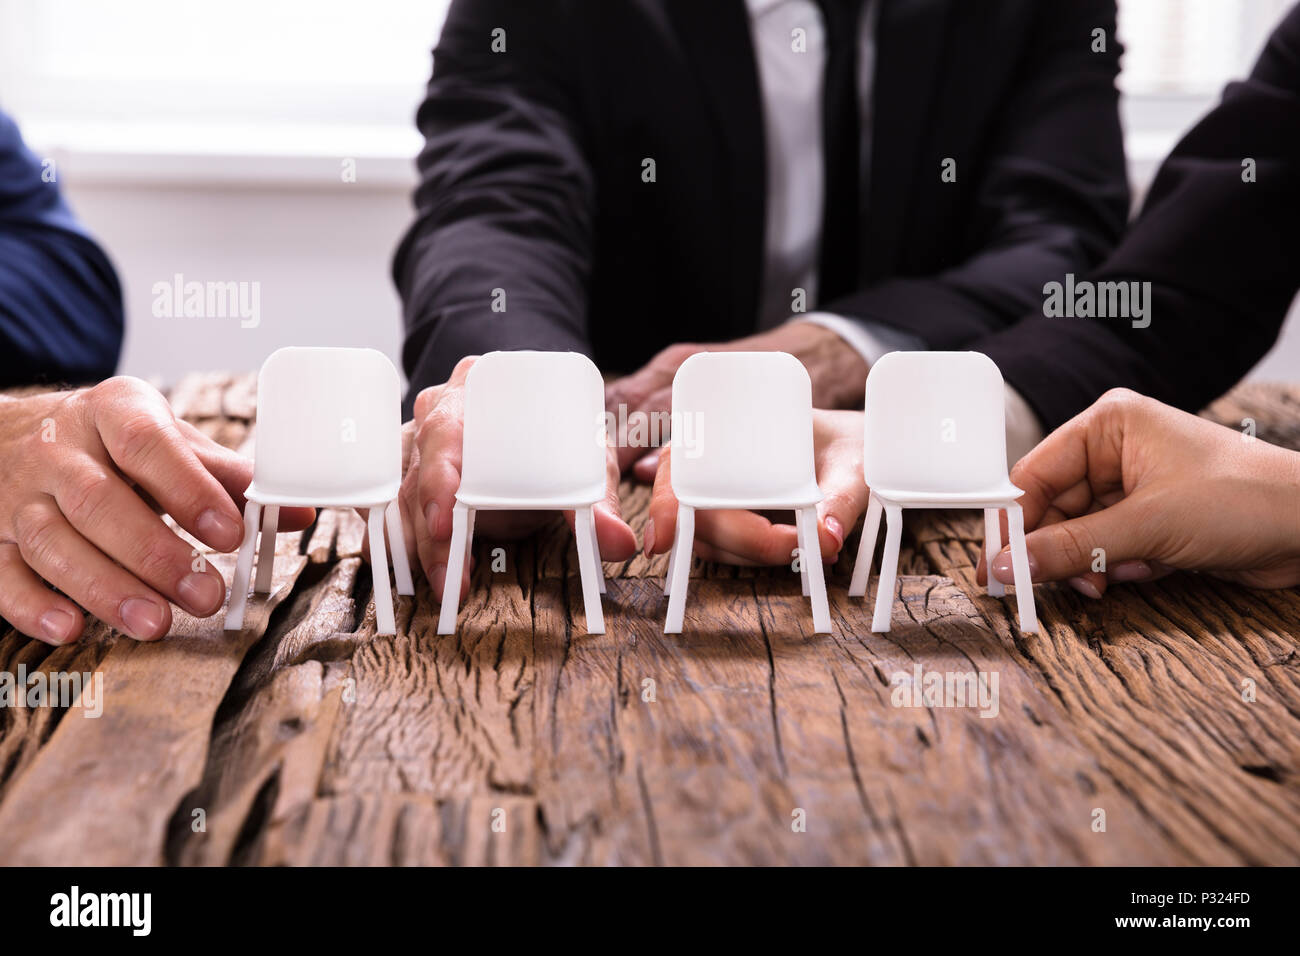 Close-up Of A Businesspersons's Hands Arranging Chairs In A Row Stock Photo